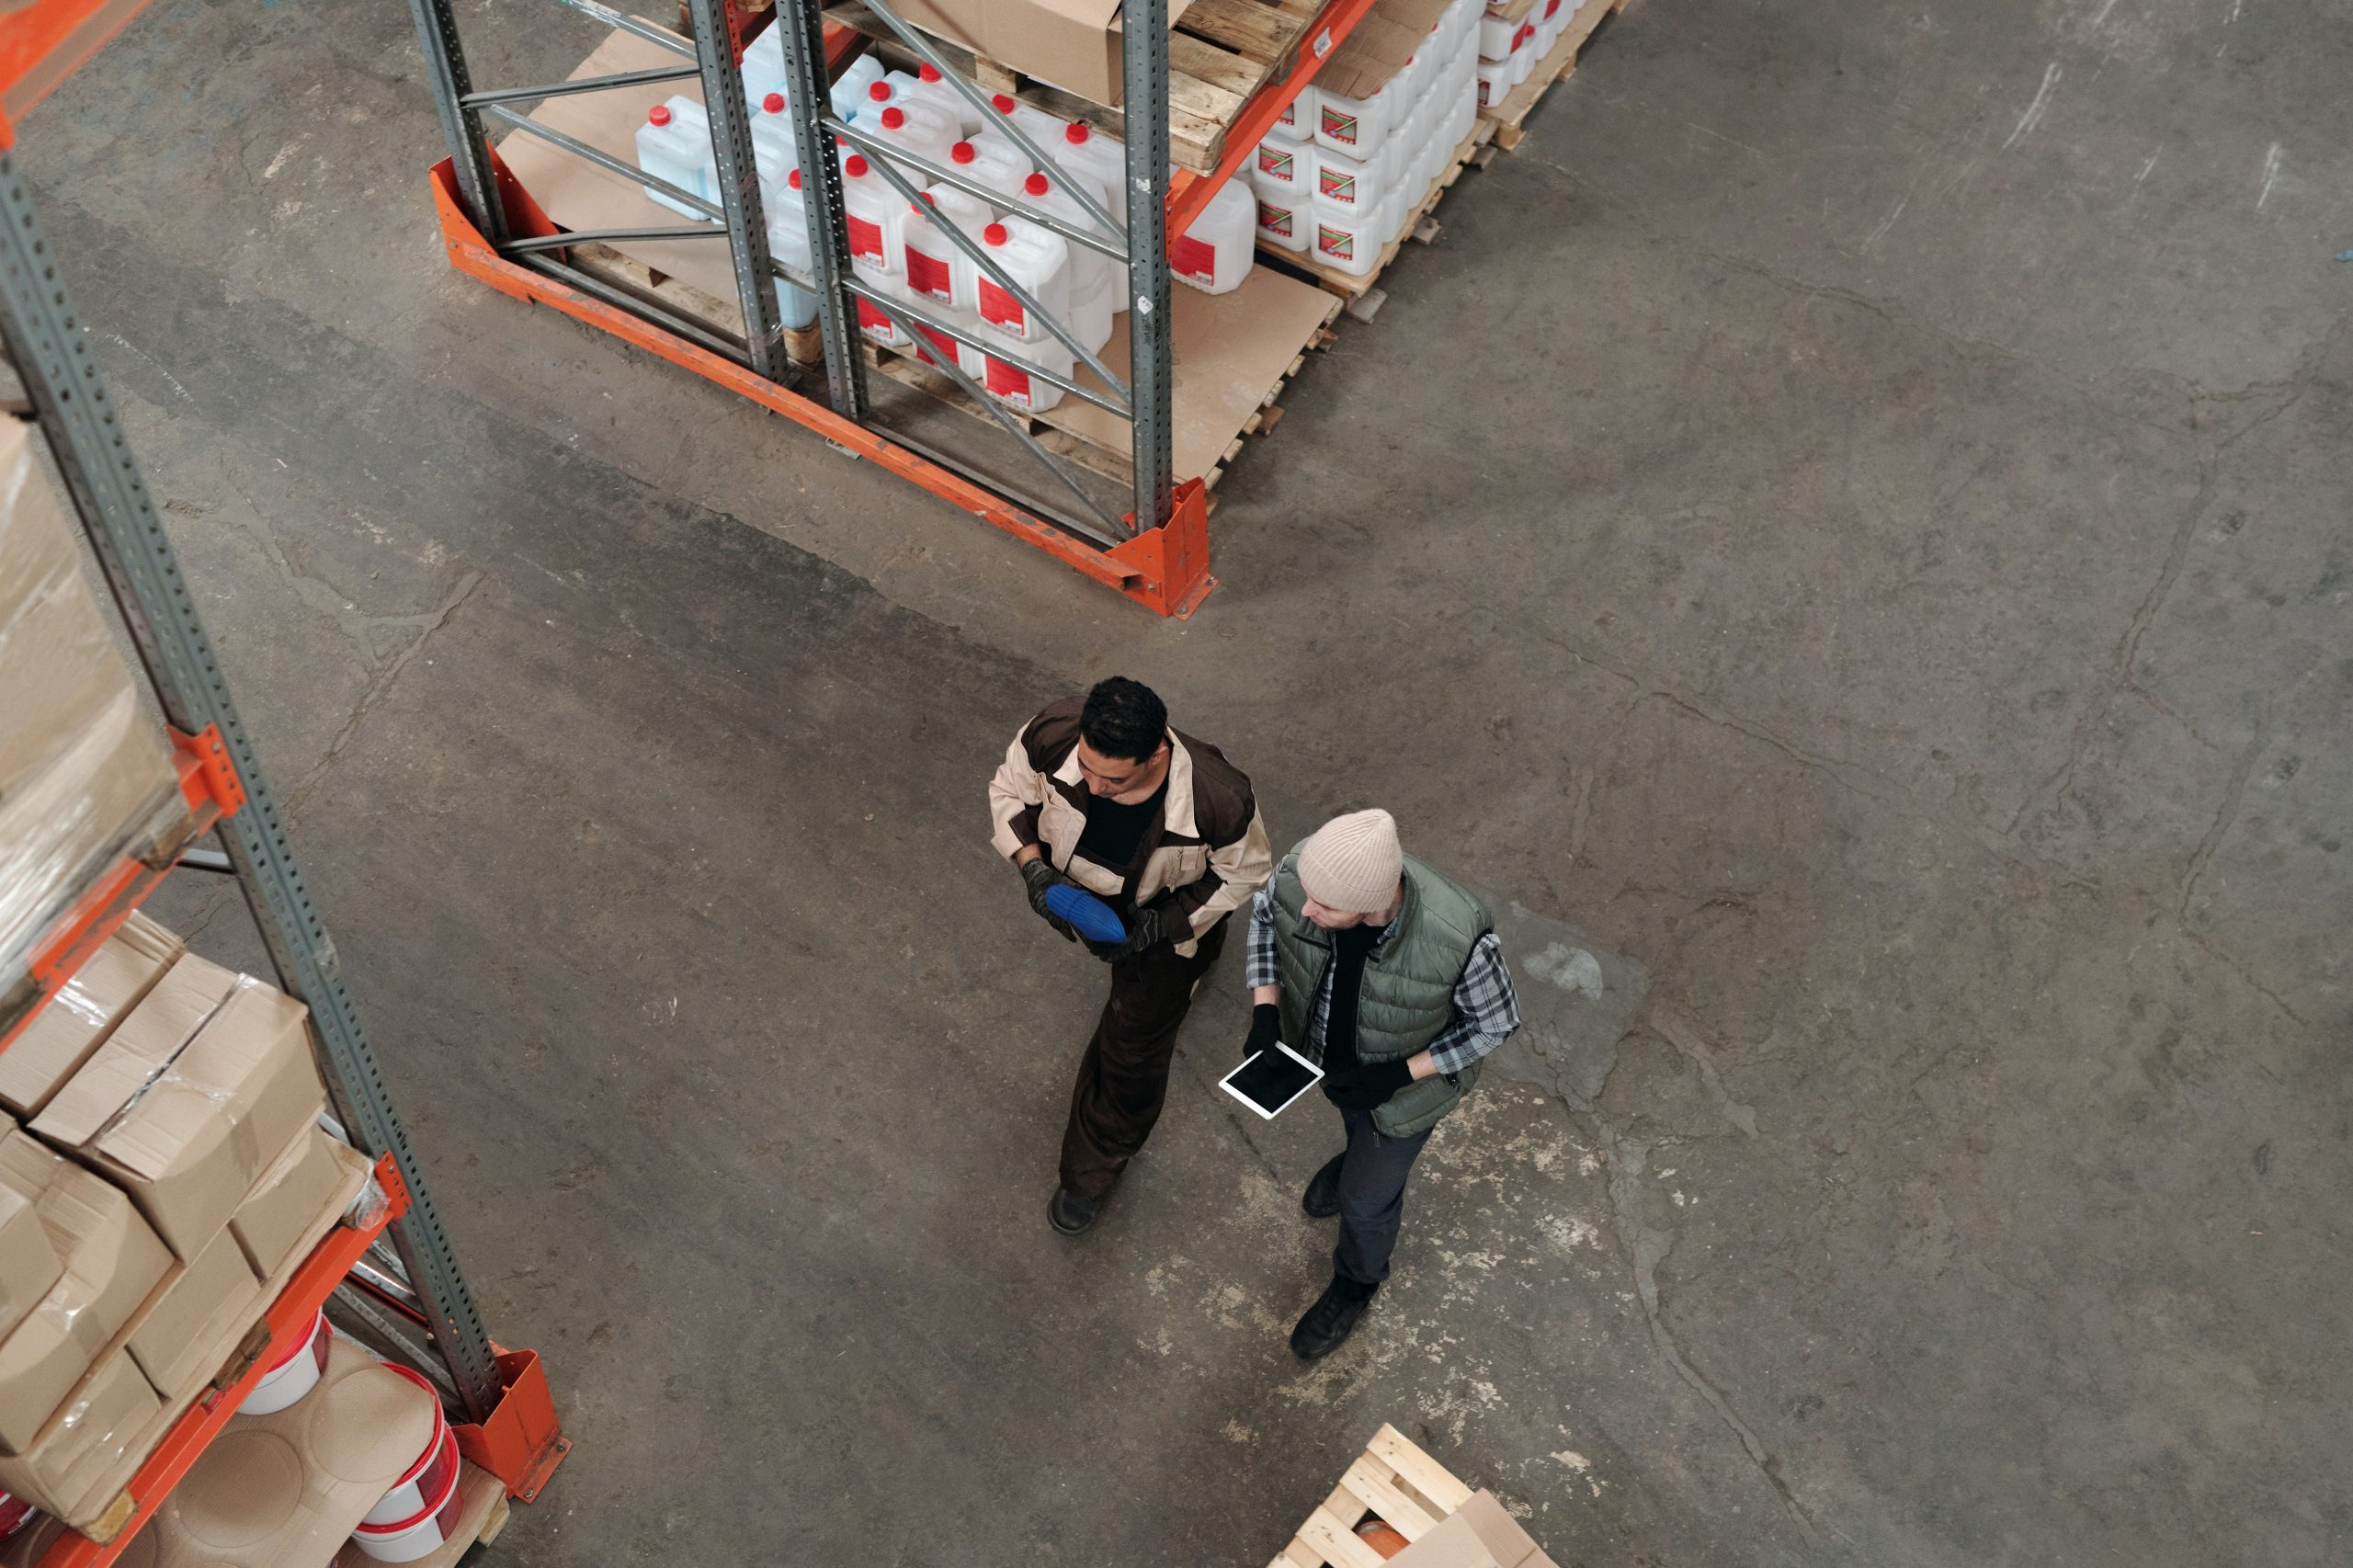 Two men walking through a distribution warehouse working on mobile tablets